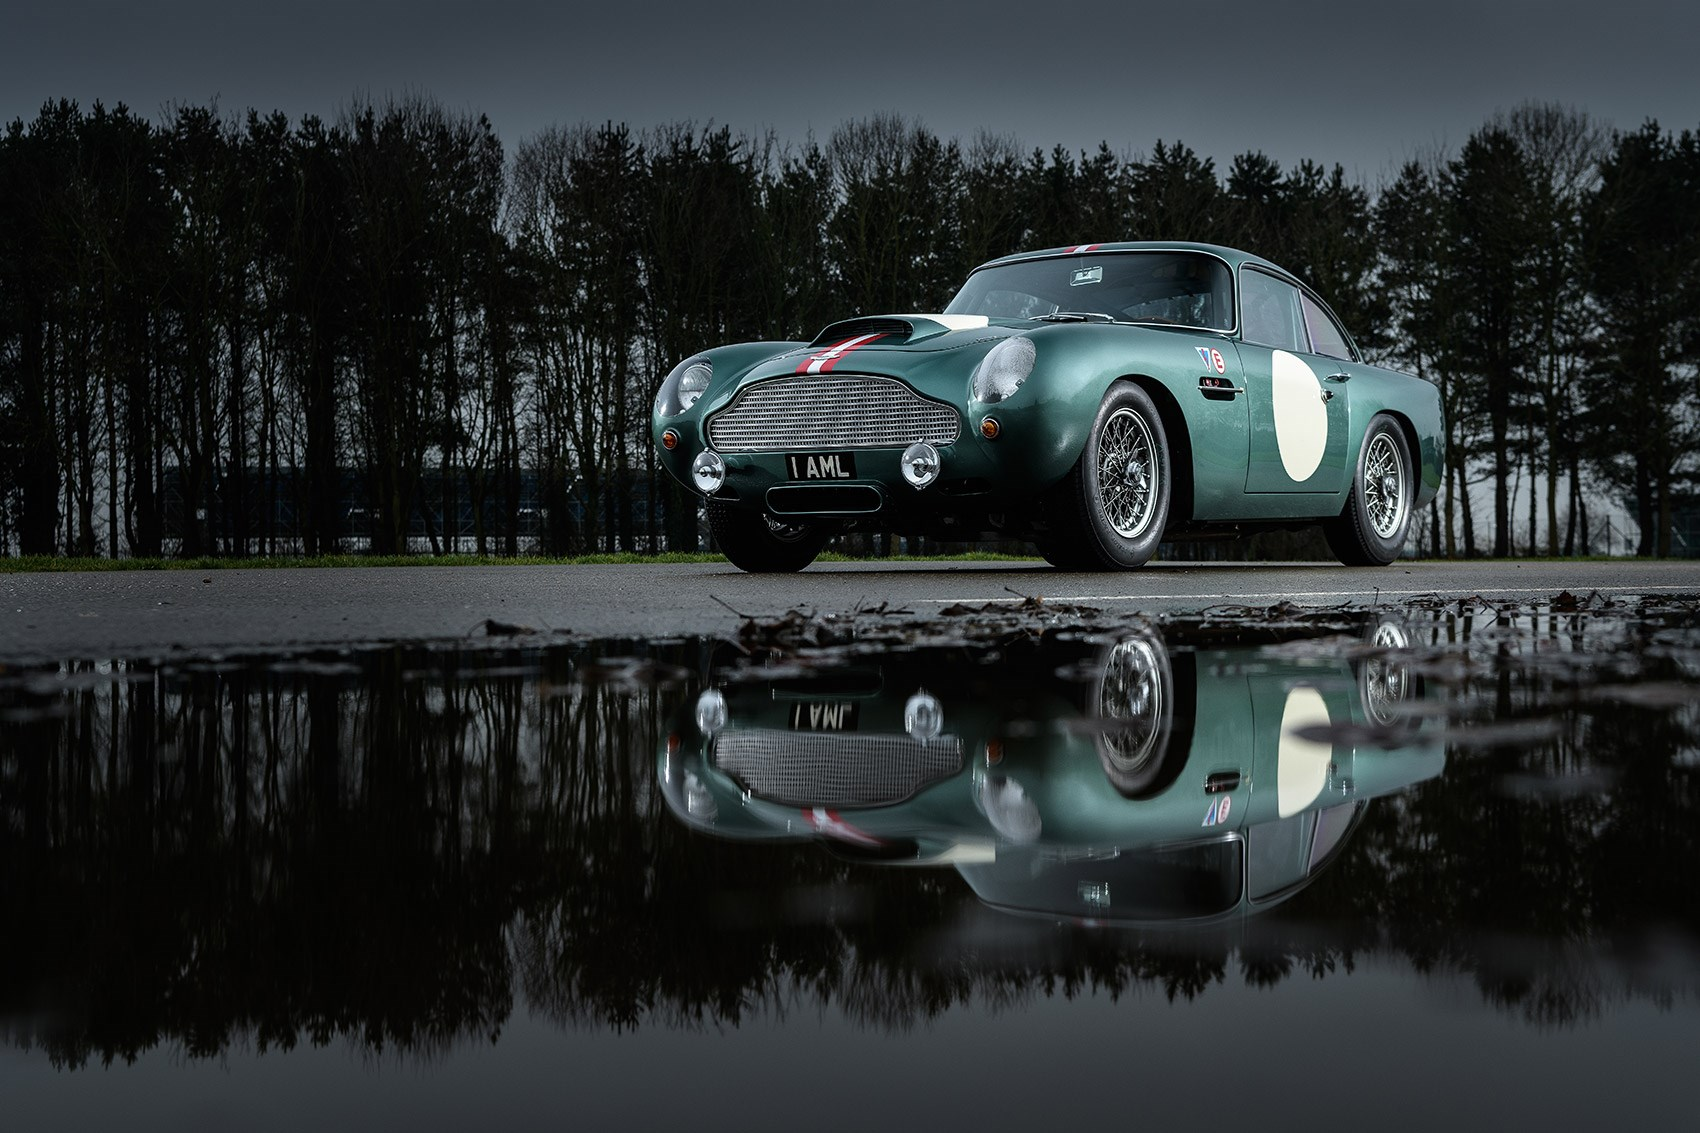 The new 2018 Aston DB4 GT Continuation sports car